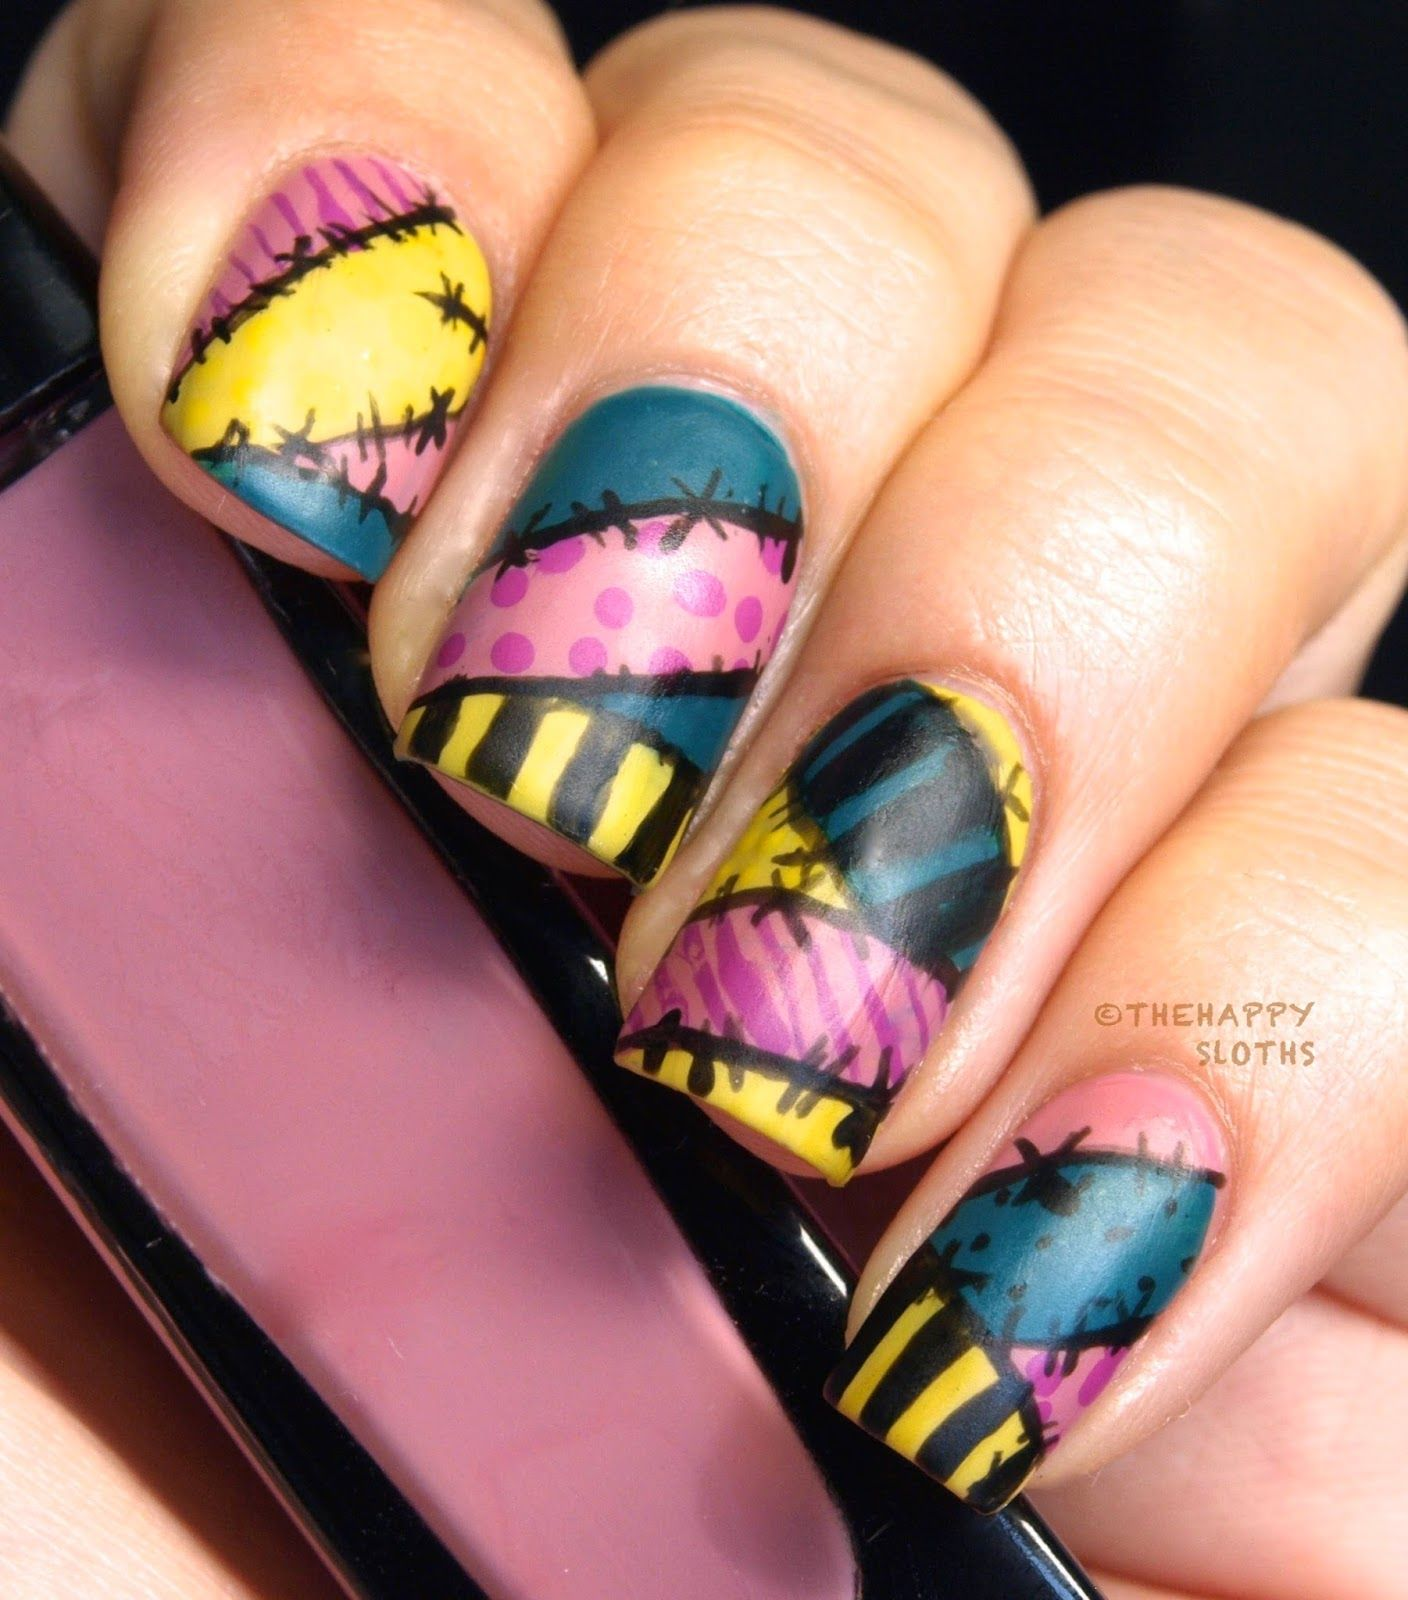 The Nightmare Before Christmas Sally Manicure: My Nail Polish Canada ...